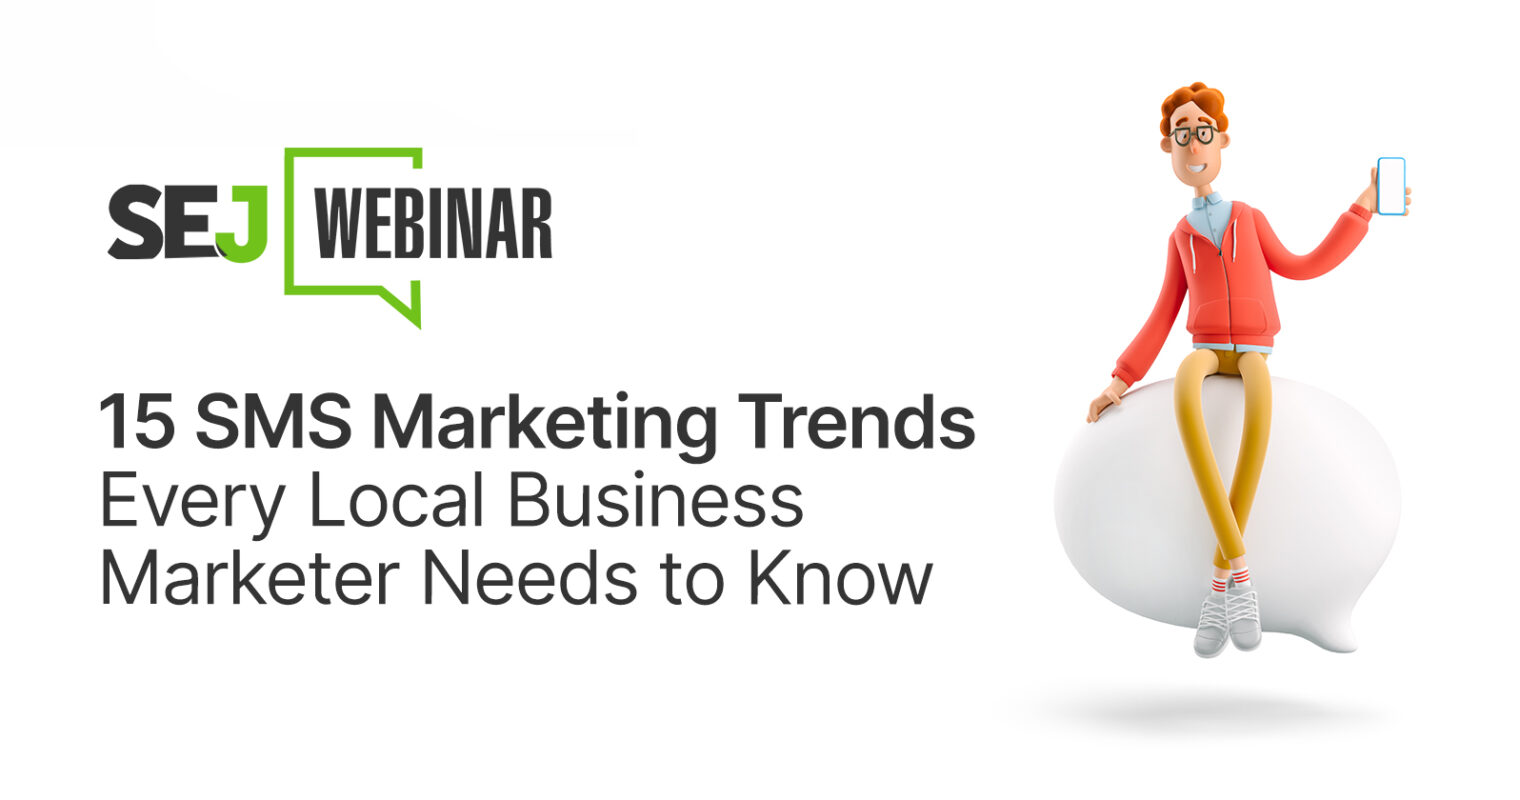 15 SMS Marketing Stats Every Local Business Marketer Needs to Know [Webinar]